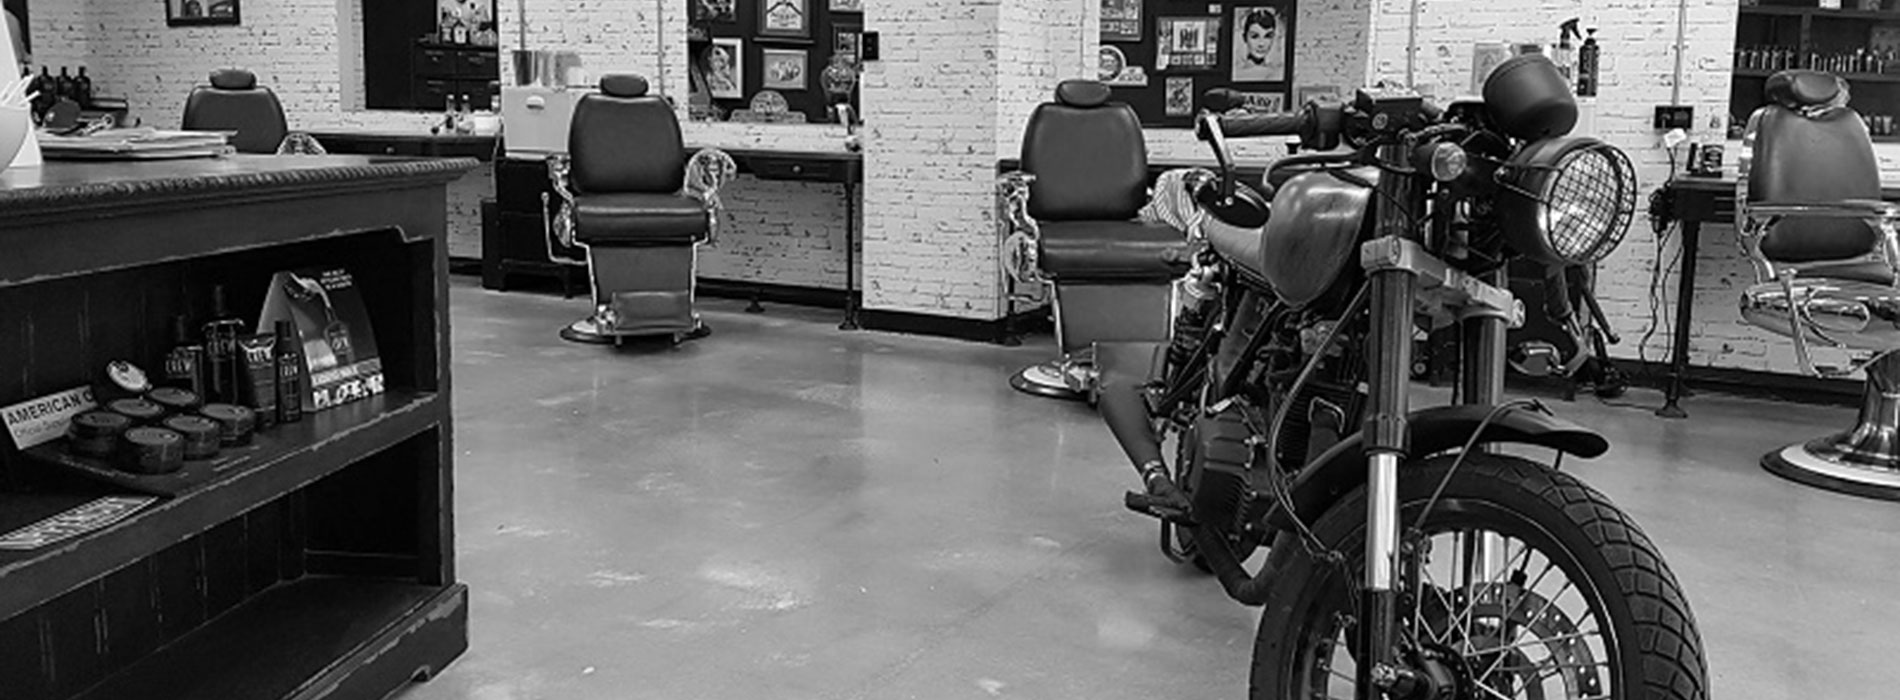 Barbershop by ZIGZAG, The Top Barbershop in Sorrento Quay in Hillarys